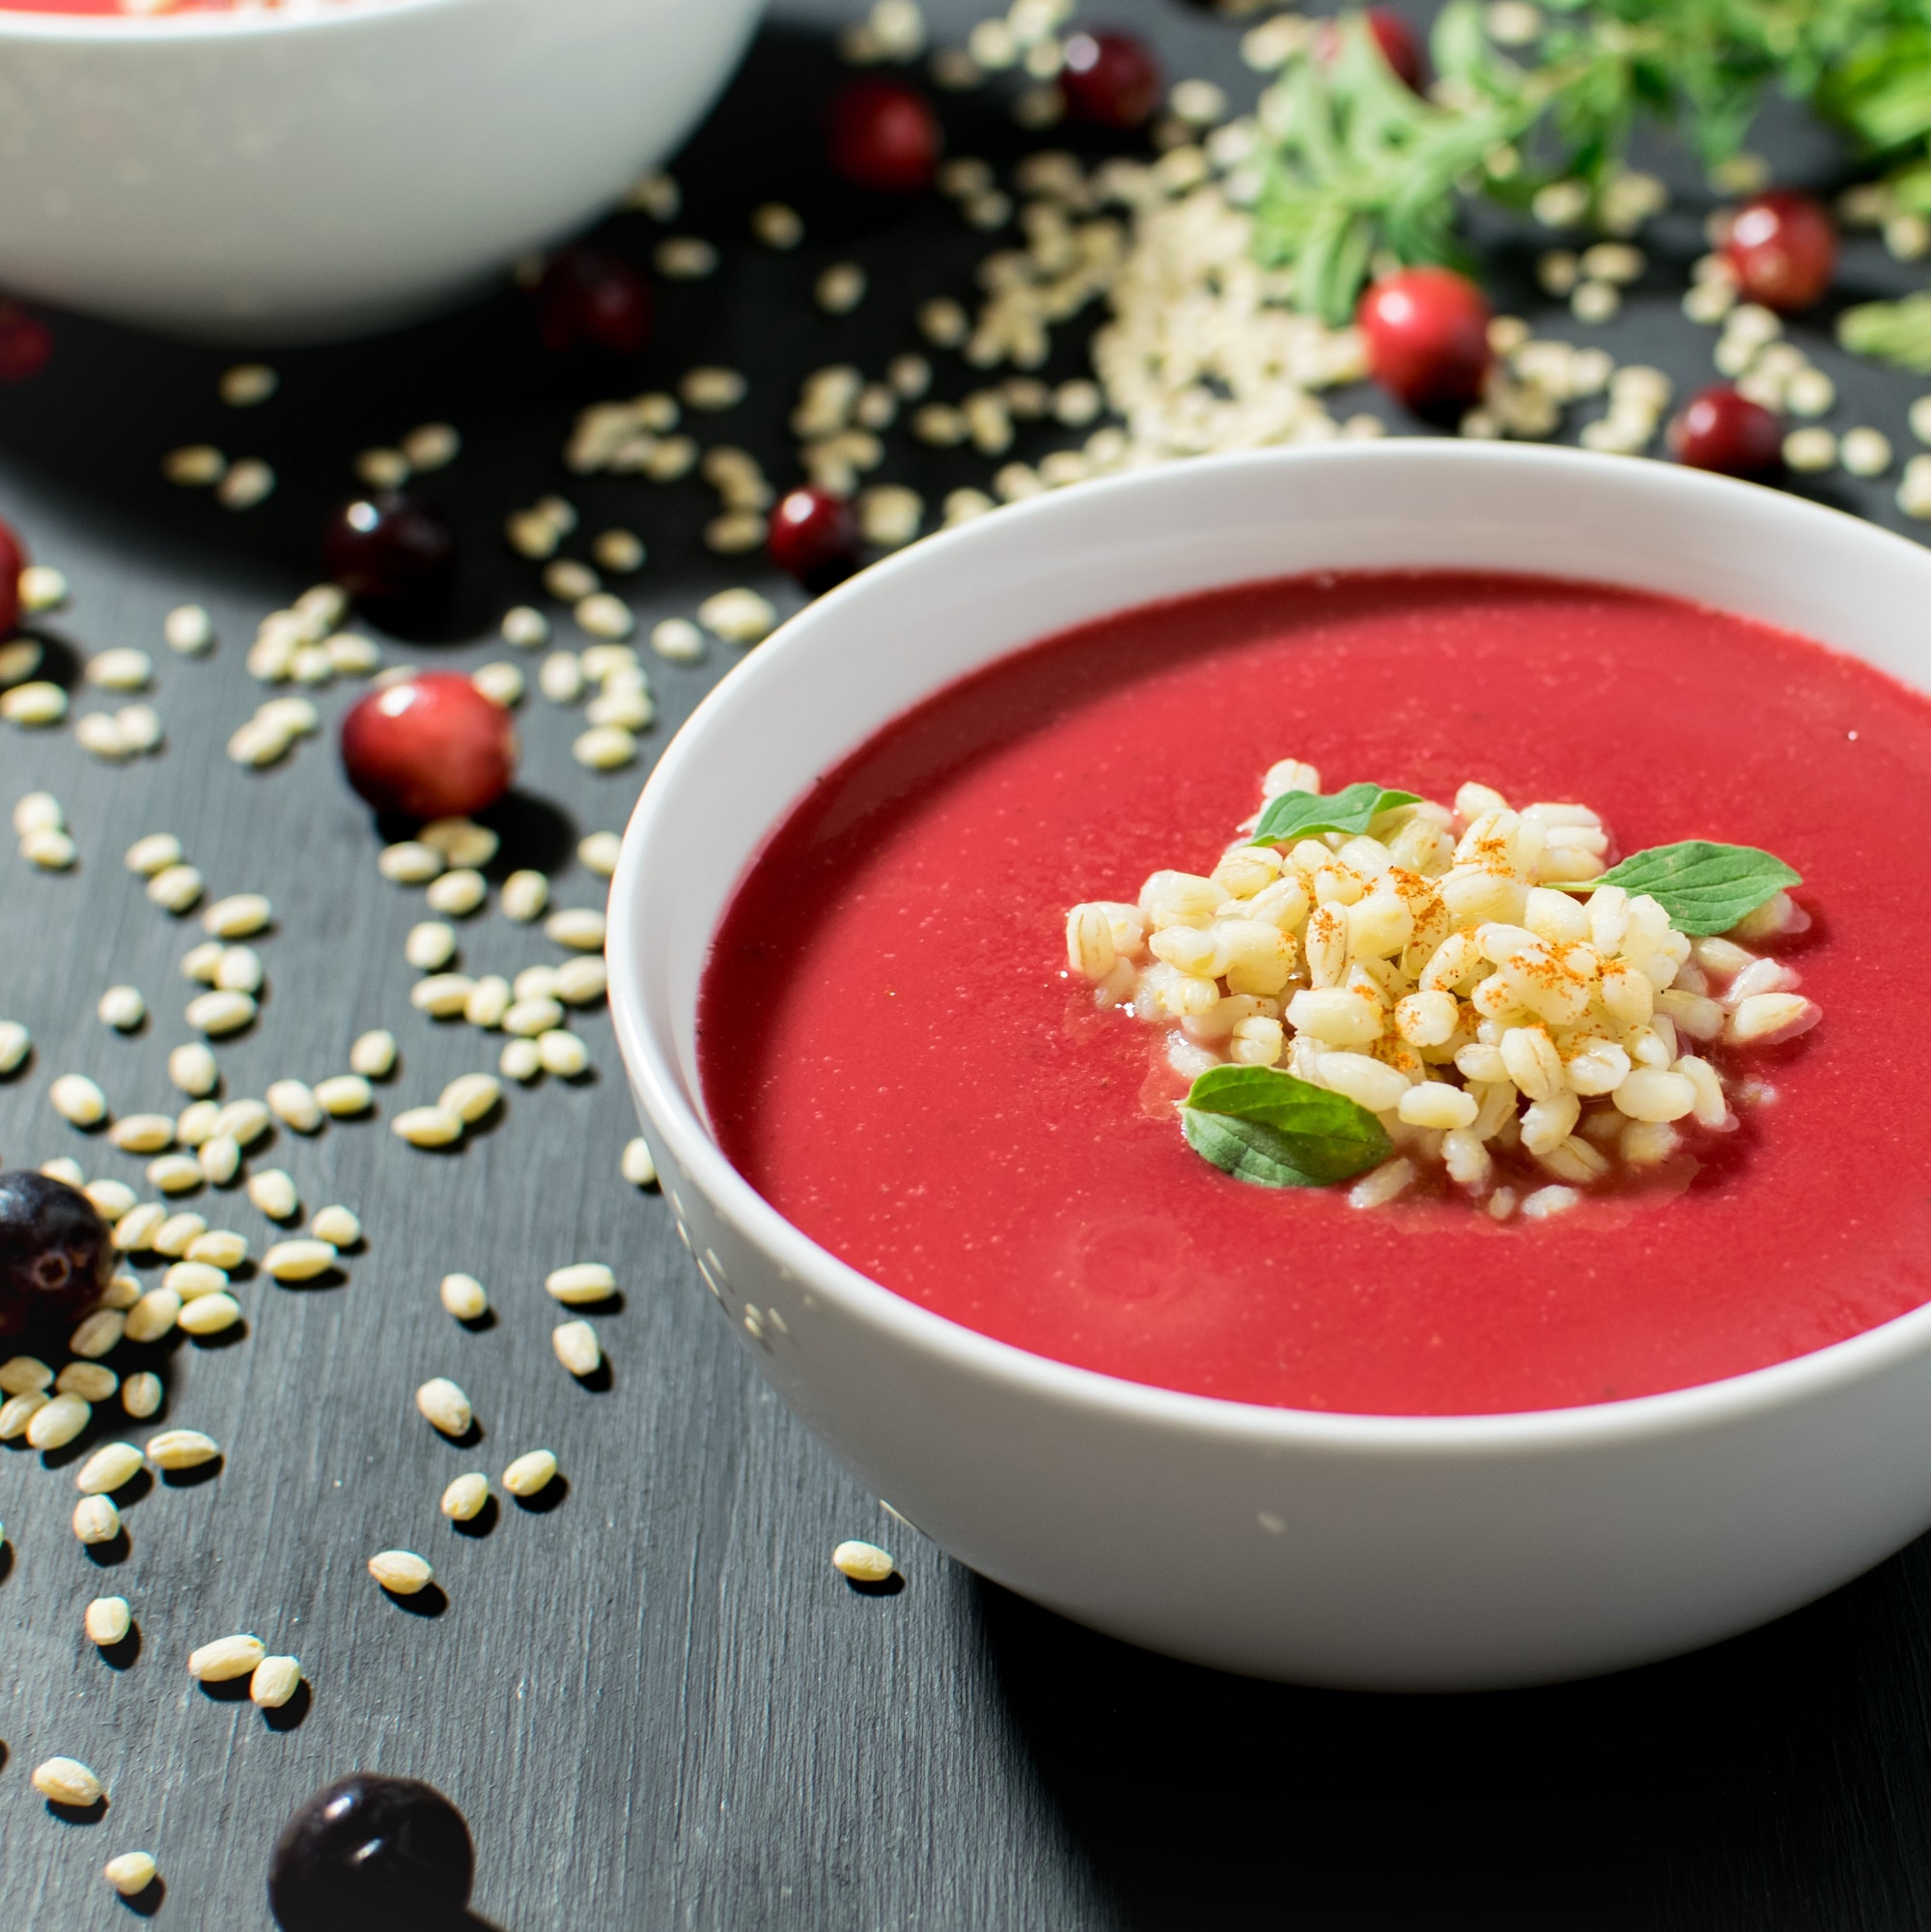 Cranberries and Barley combined together with herbs, vegetable broth and some spices this Cranberry Barley Soup turned out to be so healthy and delicious and perfect for the cold weather | vegan and dairy free | kiipfit.com